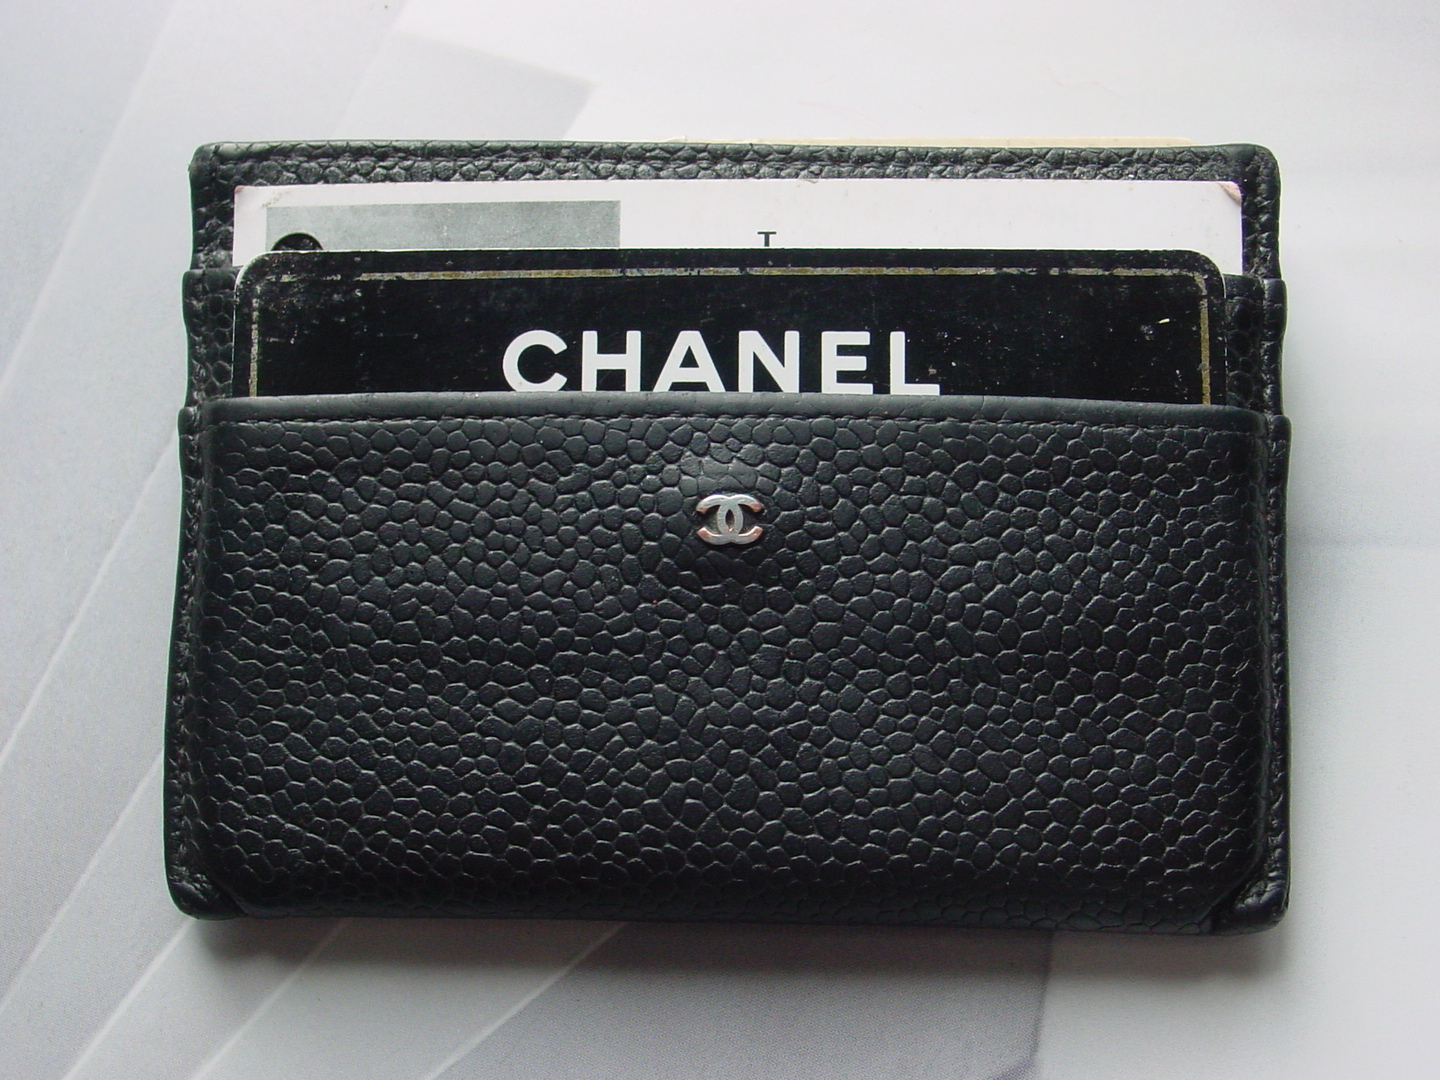 Champions: Chanel Card Holder | Gracious, Good\'s Blog